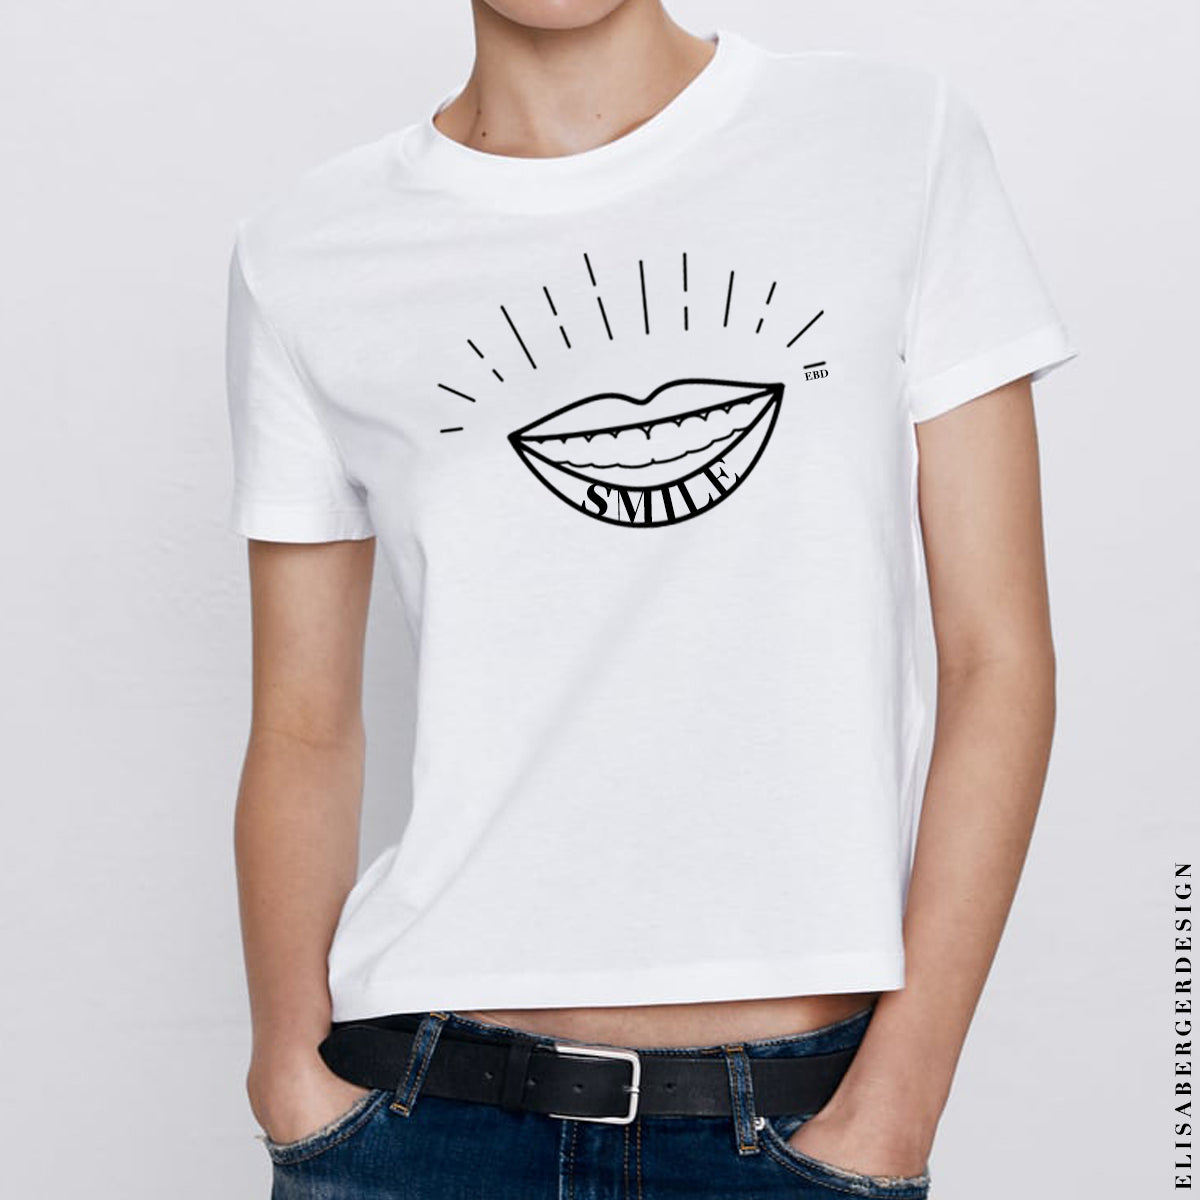 T-Shirt created for happy people that wants to dress you with Passion & Style. For Women only LARGE size. Material : COTTON 100%  T-Shirt fits exactly like in the picture, comfortable around the belly and not to tight over the shoulders.  Material : 100% Cotton - White Shipping costs : Free Delivery time : 15 days - MAGLIETTA A MANICHE CORTE